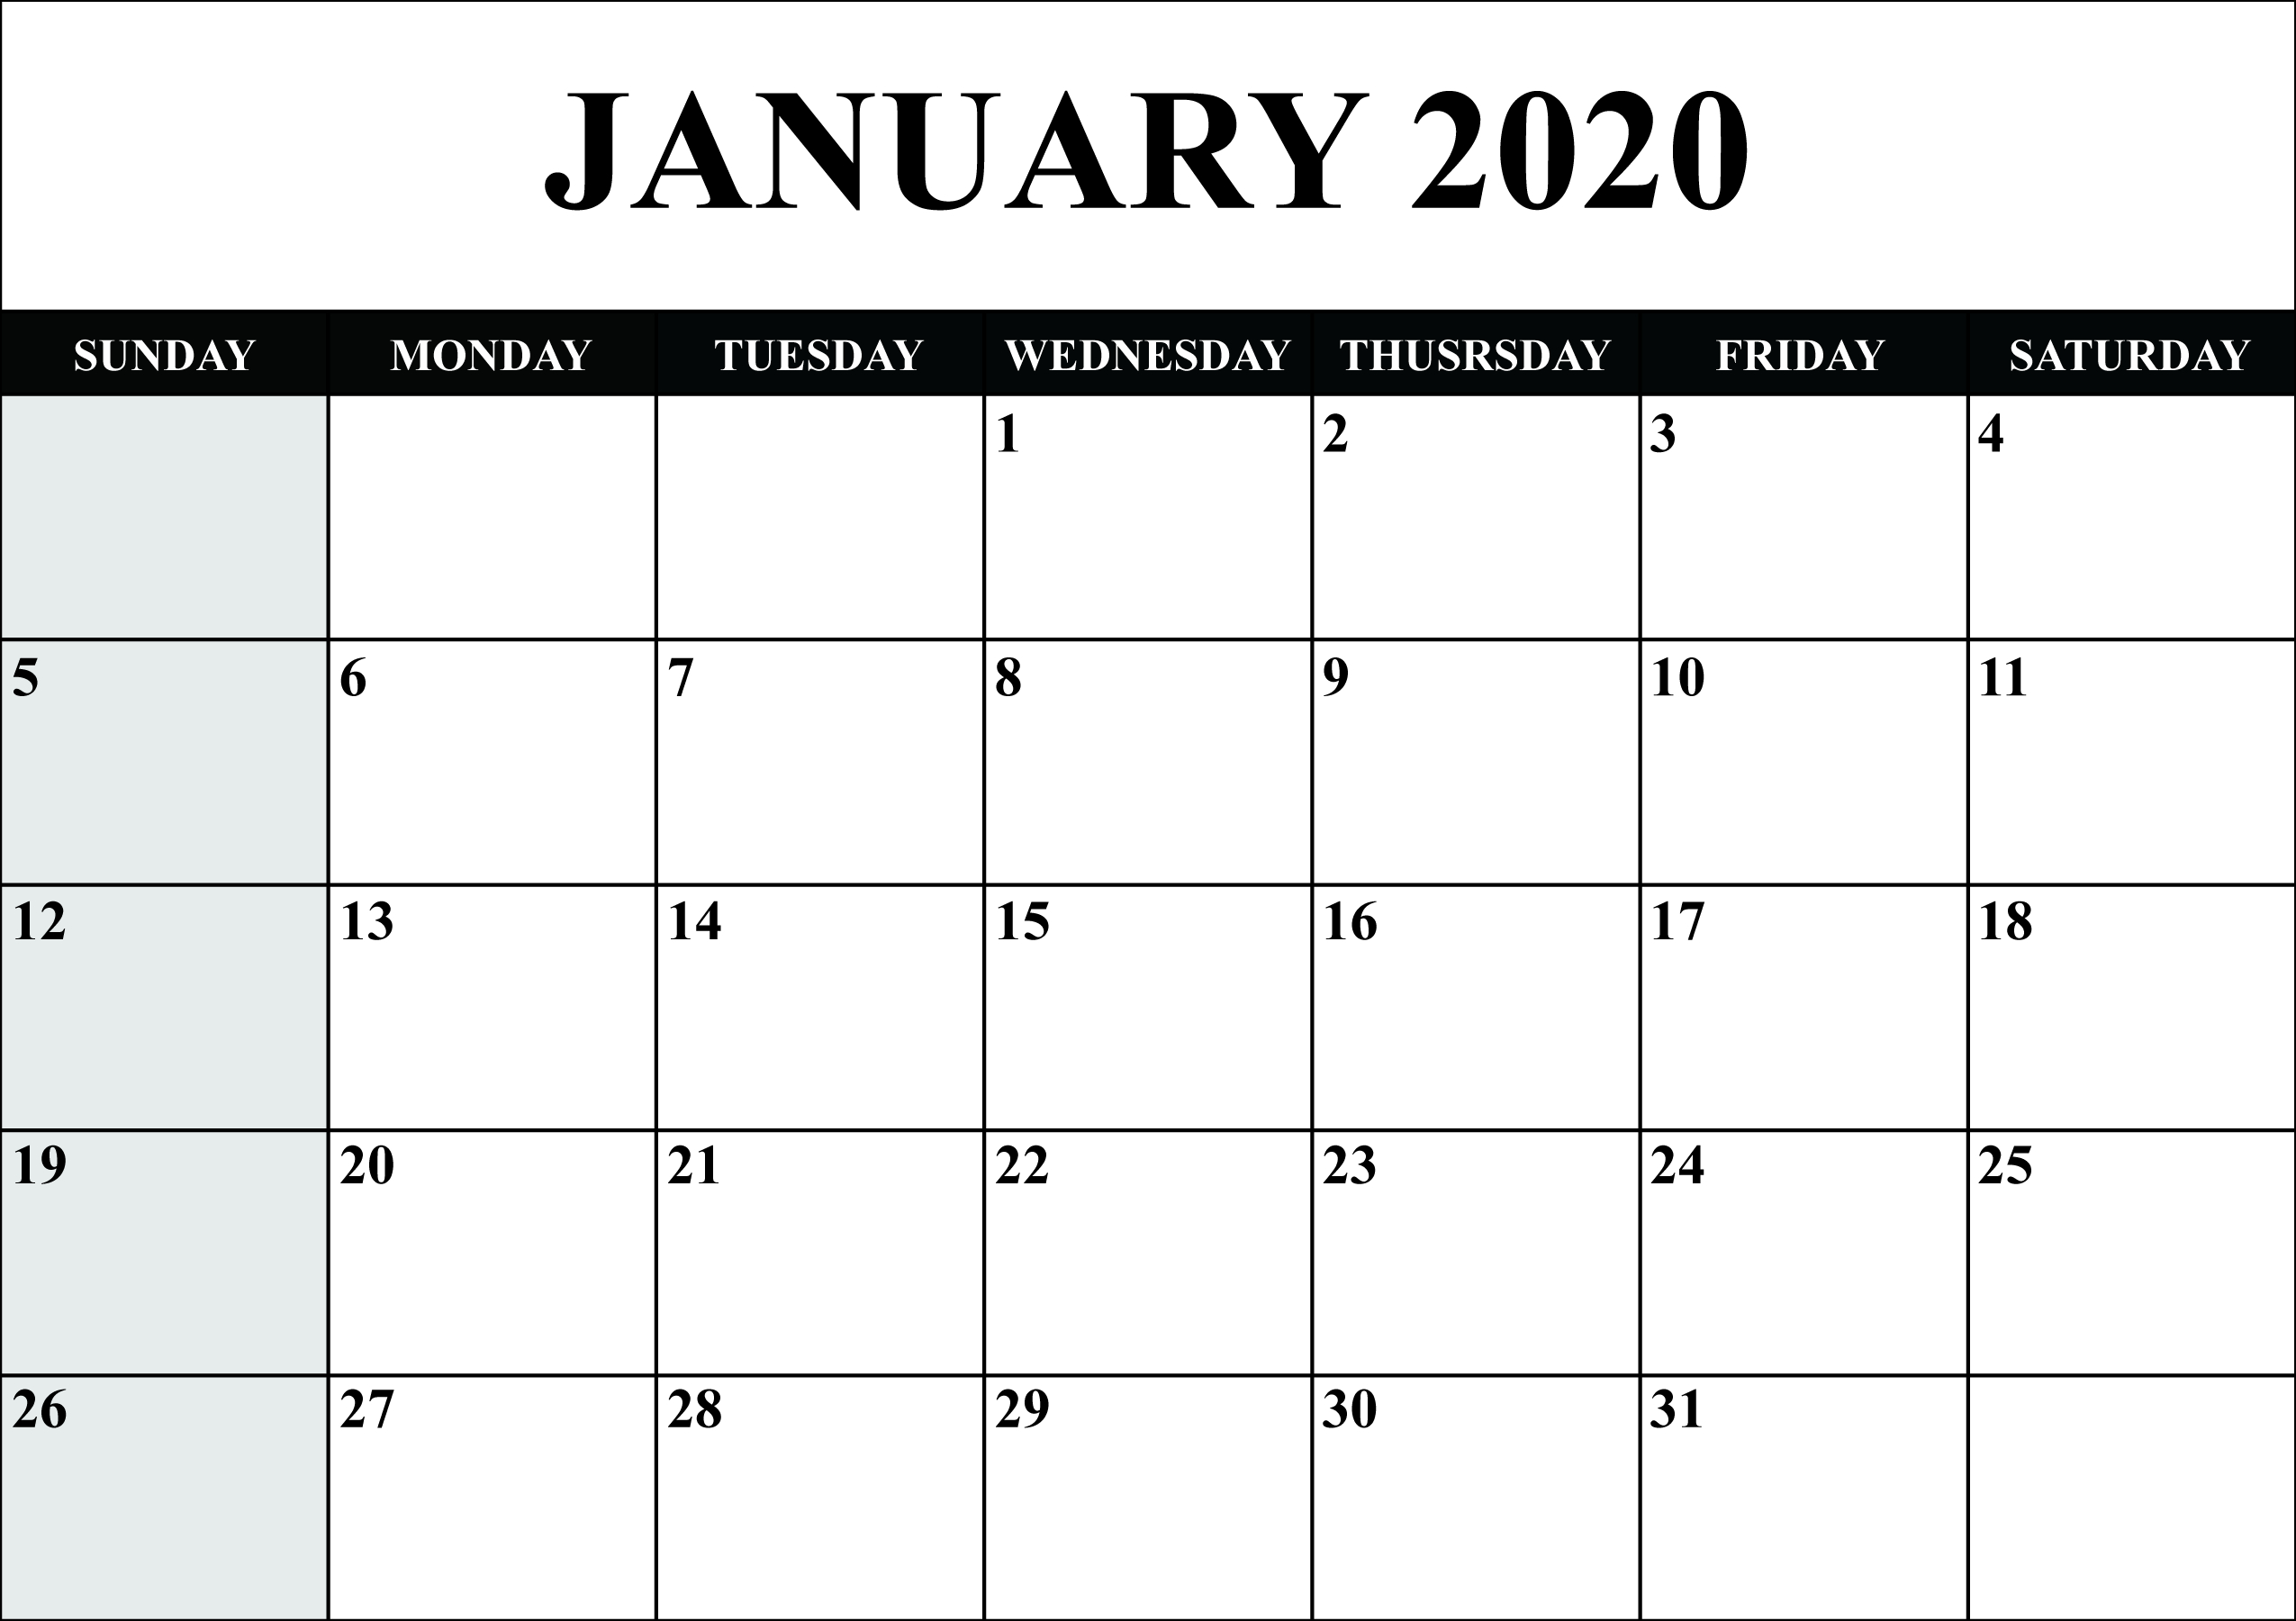 Free Blank January 2020 Calendar Printable In Pdf, Word, Excel intended for Calendar 2020 Printable Calendar Starting With Monday